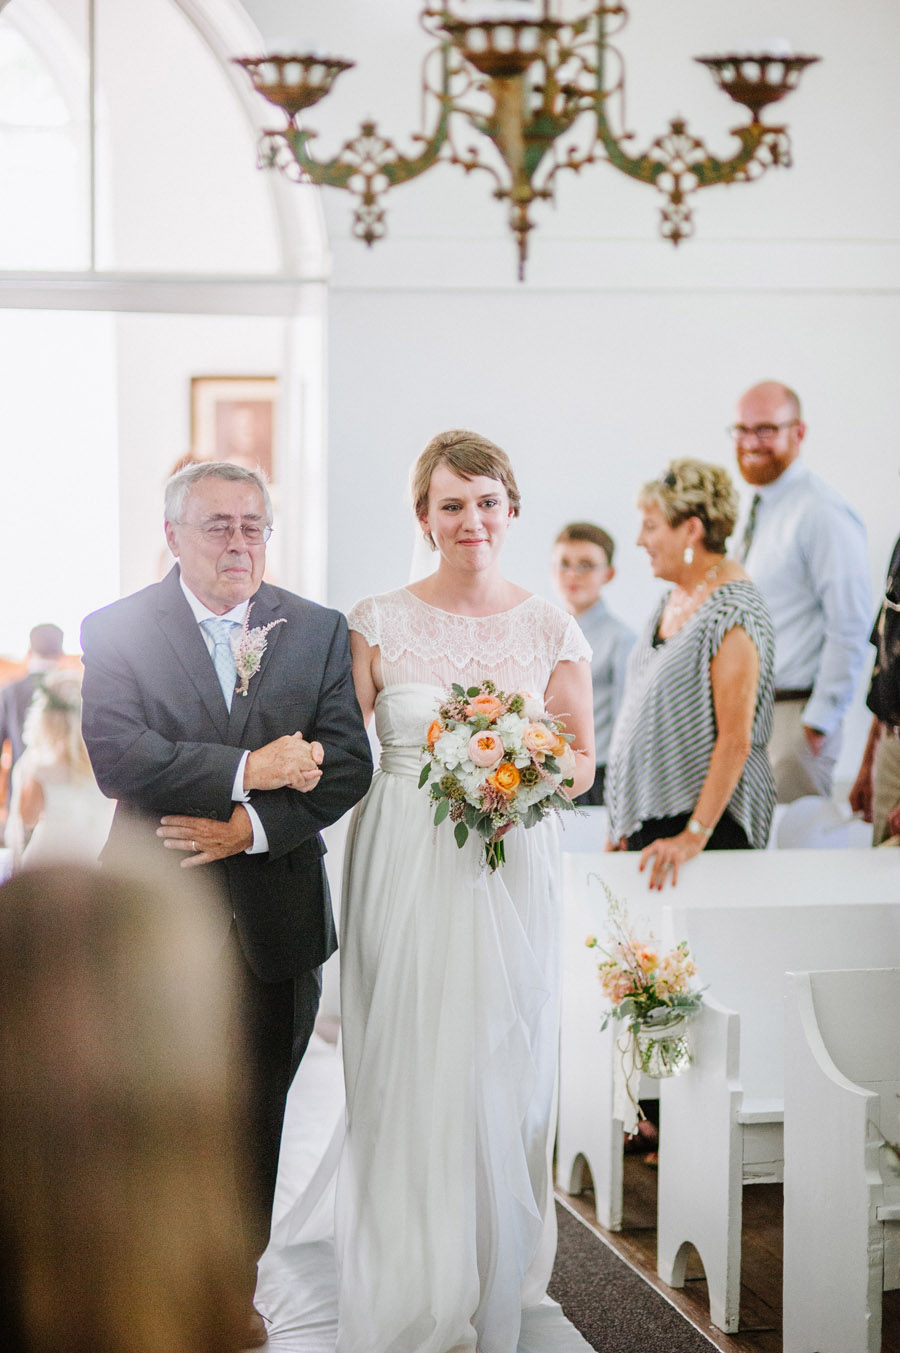 Emotional father walks bride down aisle at Ryssby Church